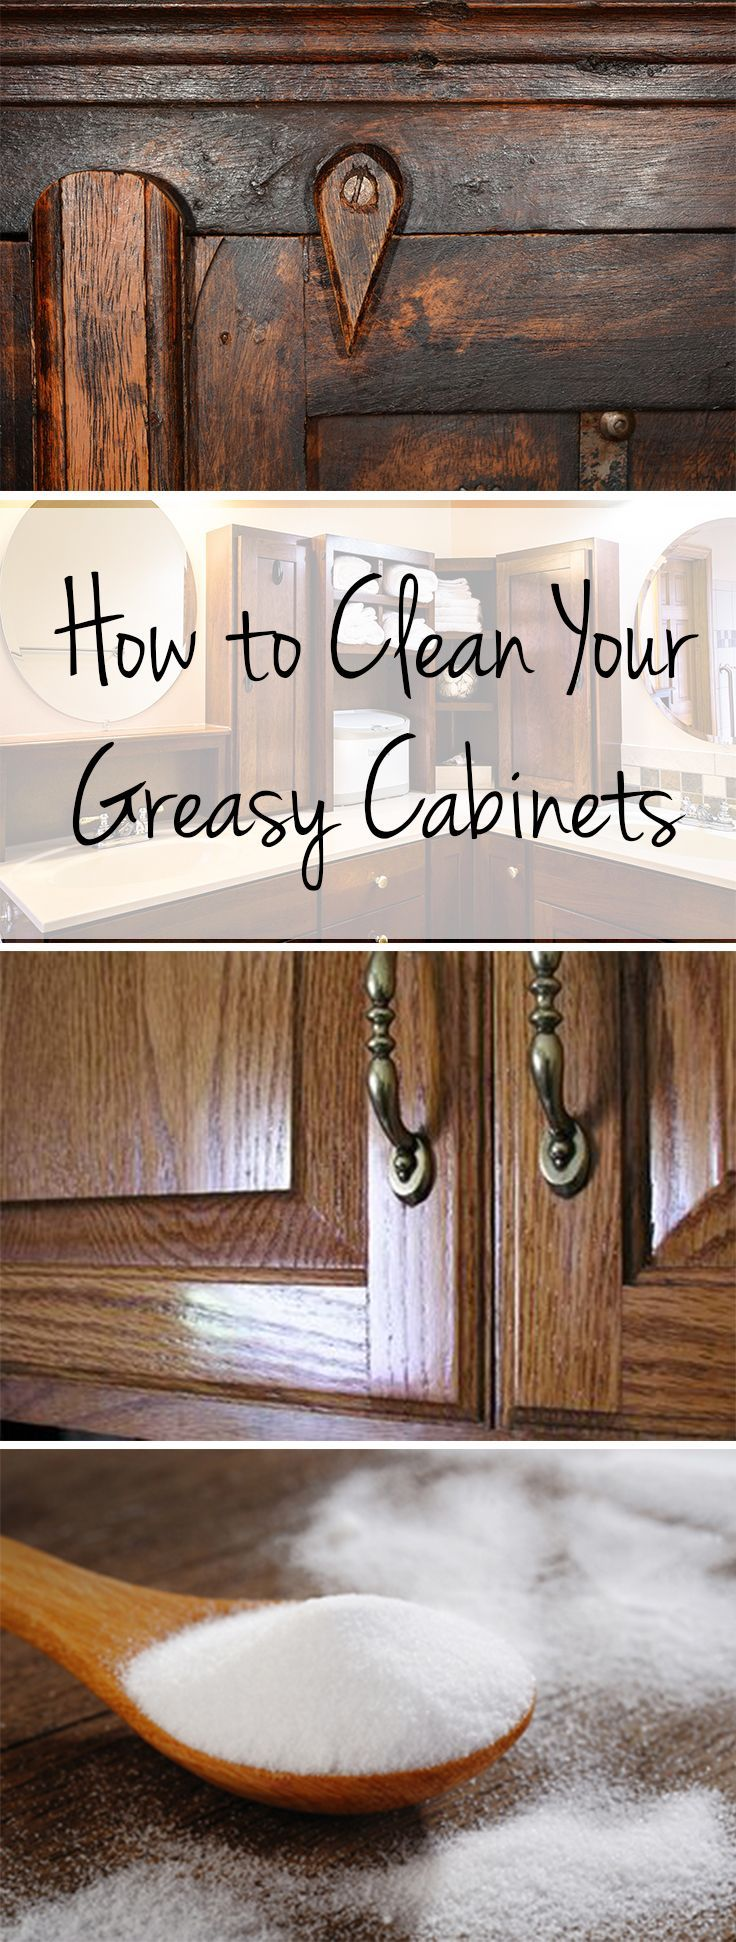 to Clean Your Greasy Cabinets Cleaning tips, cleaning hacks, popular pin, clean home, clean your greasy cabinets, kitchen cleaning hacks, clean home.Cleaning tips, cleaning hacks, popular pin, clean home, clean your greasy cabinets, kitchen cleaning hacks, clean home.